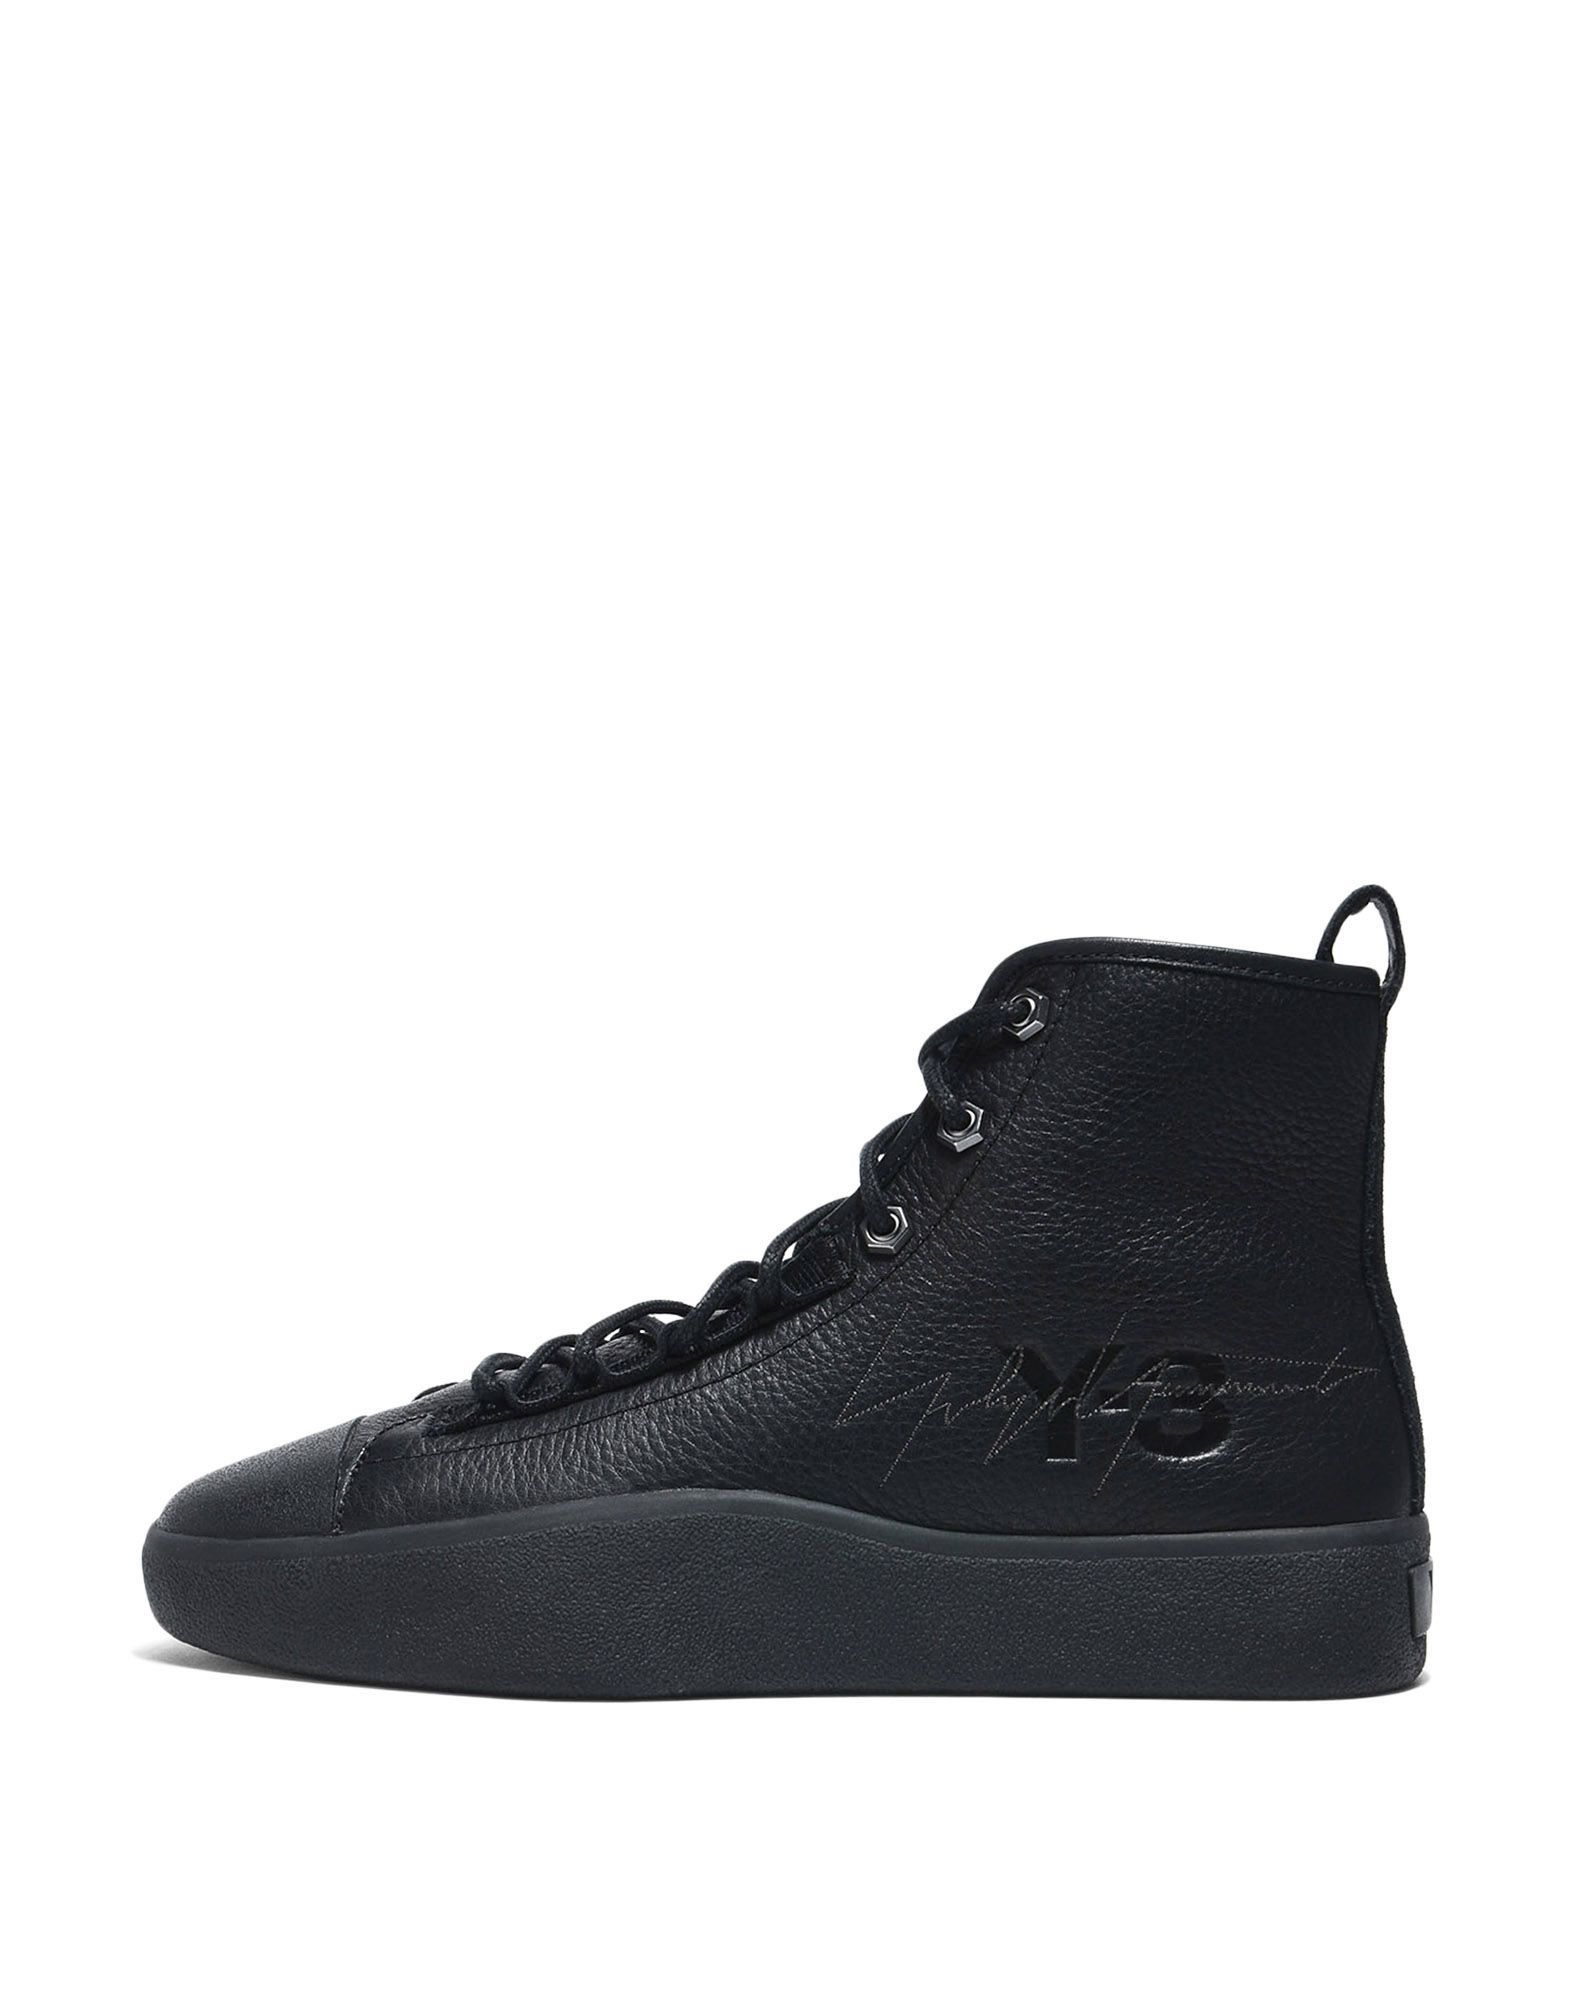 8a8046d2f61d6 Y-3 Bashyo II - High-top sneakers